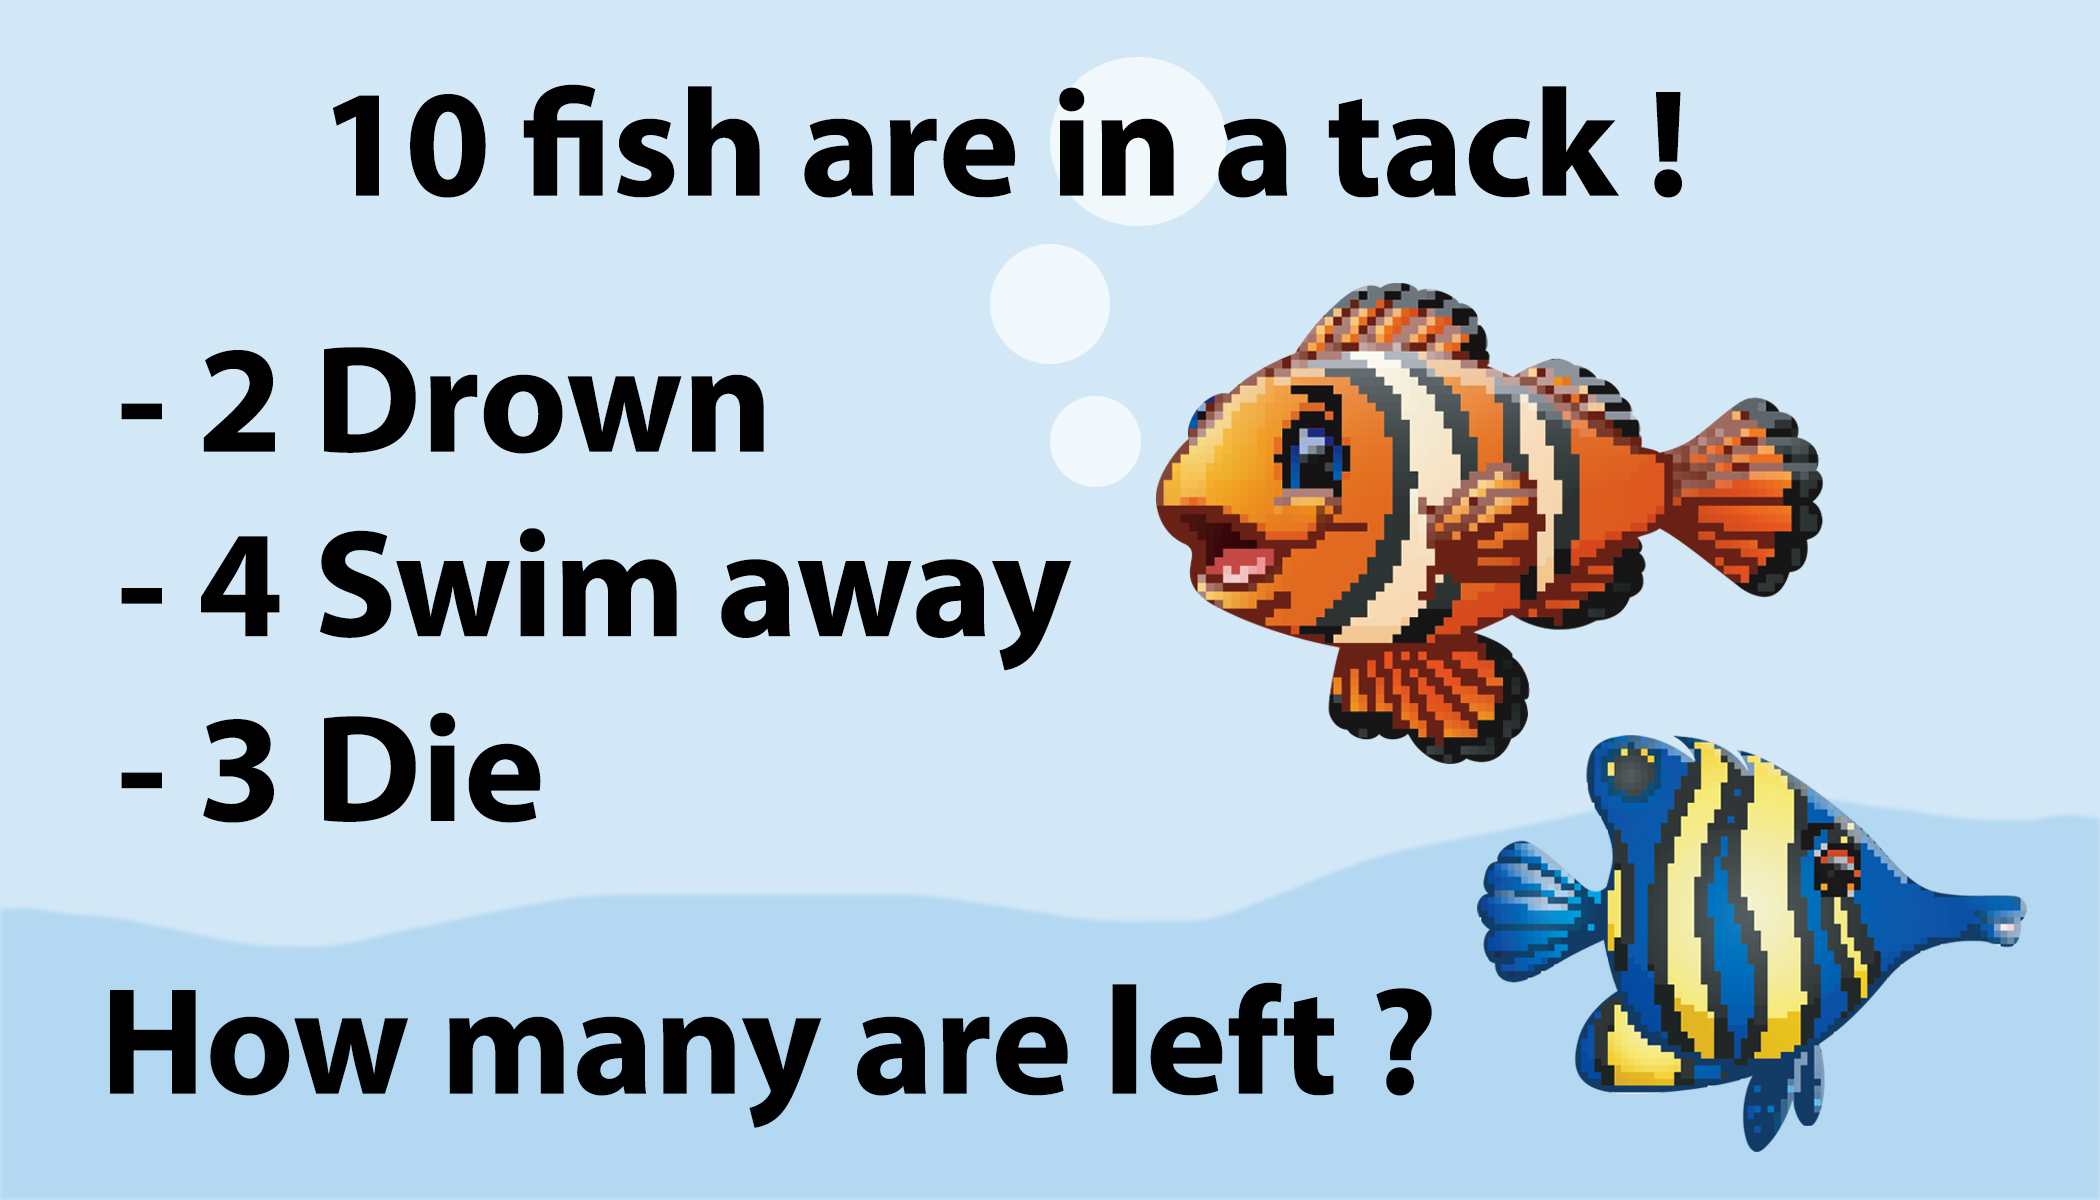 Fish Math Riddle Is Driving People Crazy Can You Solve It